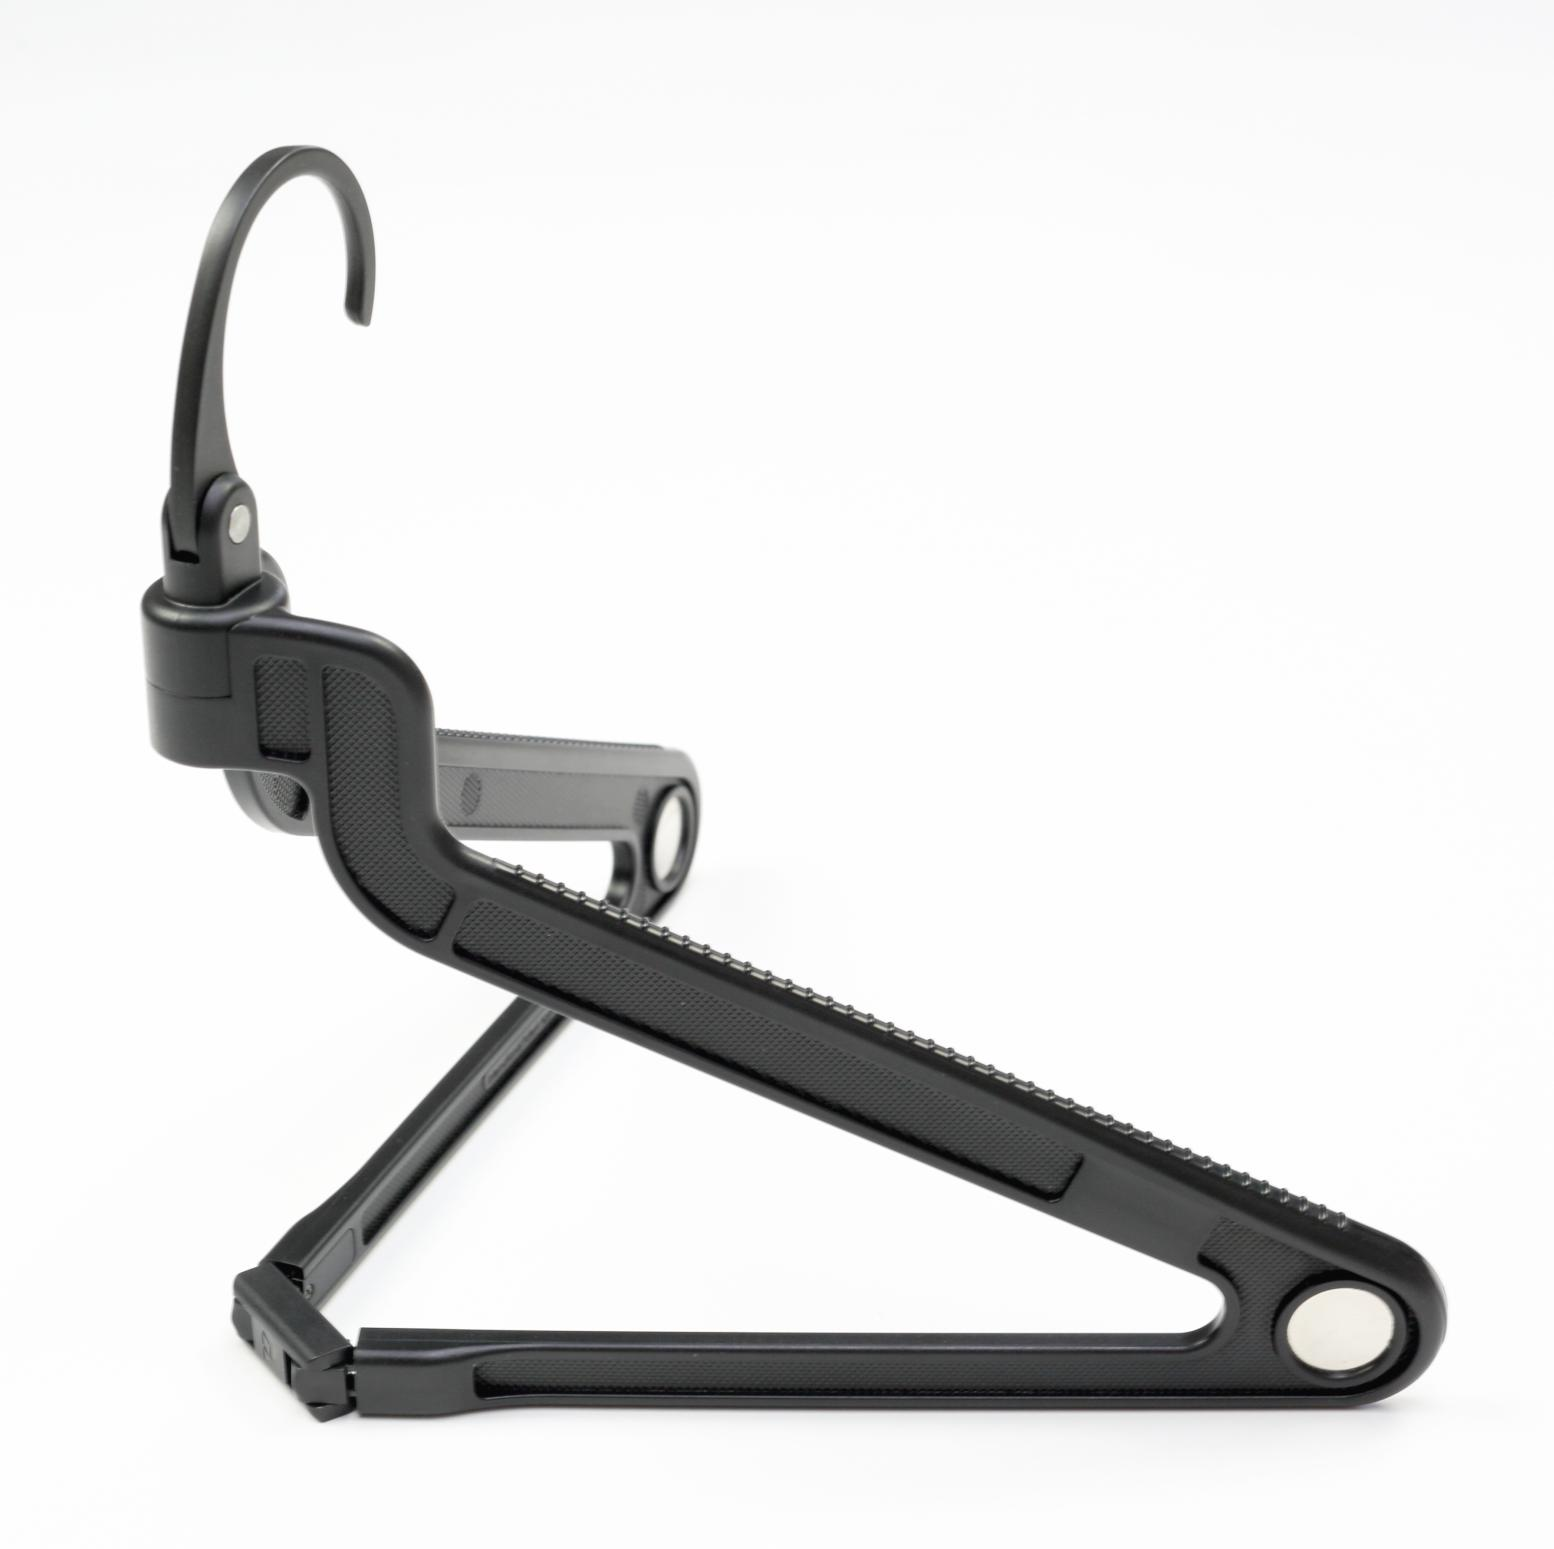 The PLIQO folding Hanger viewed from the side over a white background.